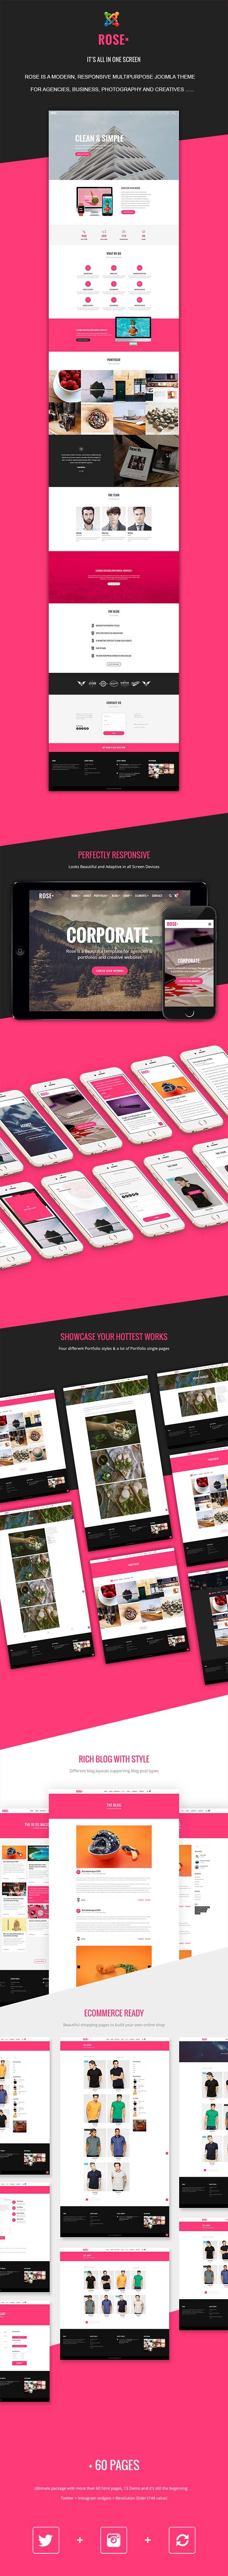 Rose - Multipurpose Responsive One Page Joomla Theme #joomla #theme #template #themeforest #envato #windstripethemes #multipurpose #business #shop #onepage